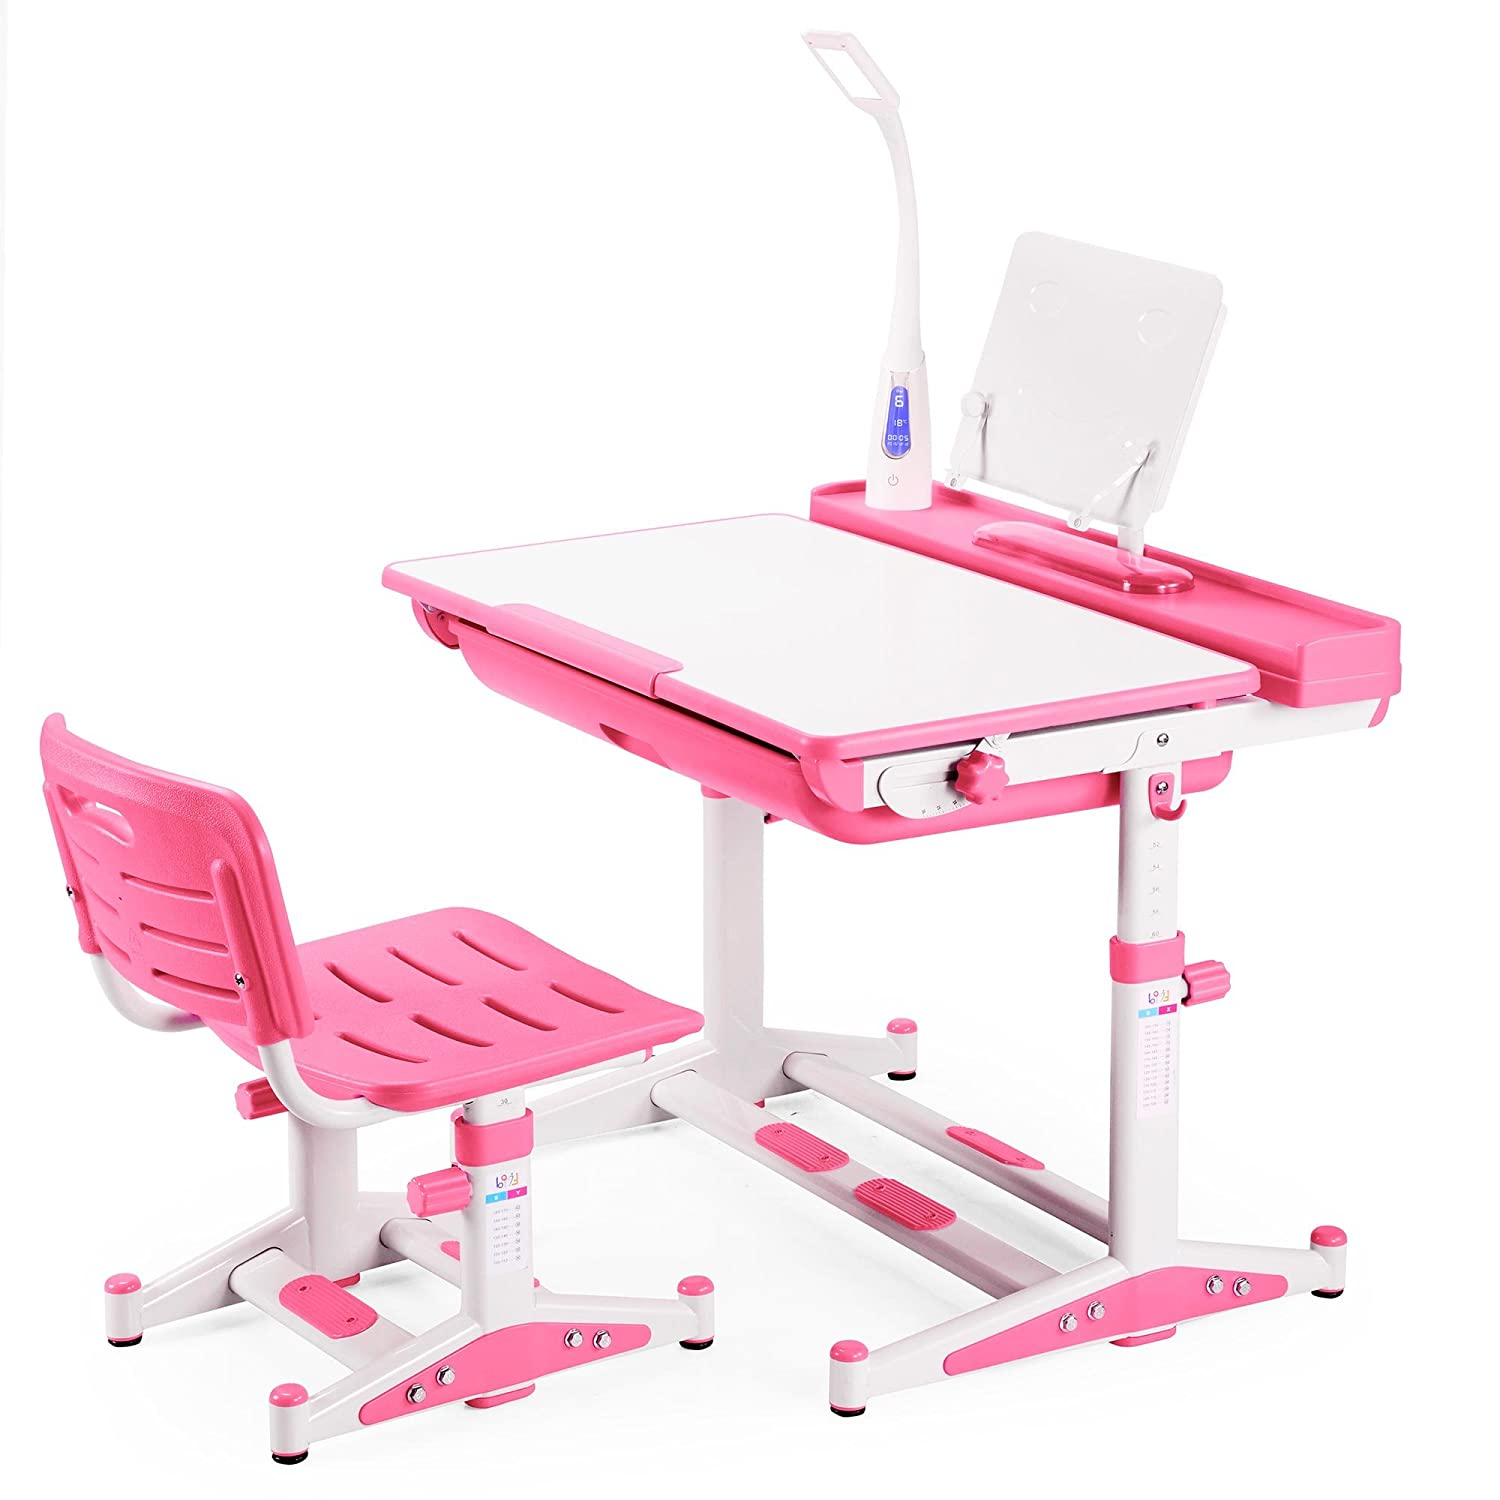 Height Adjustable Kids Desk Chair with LED Lamp FREE Steel